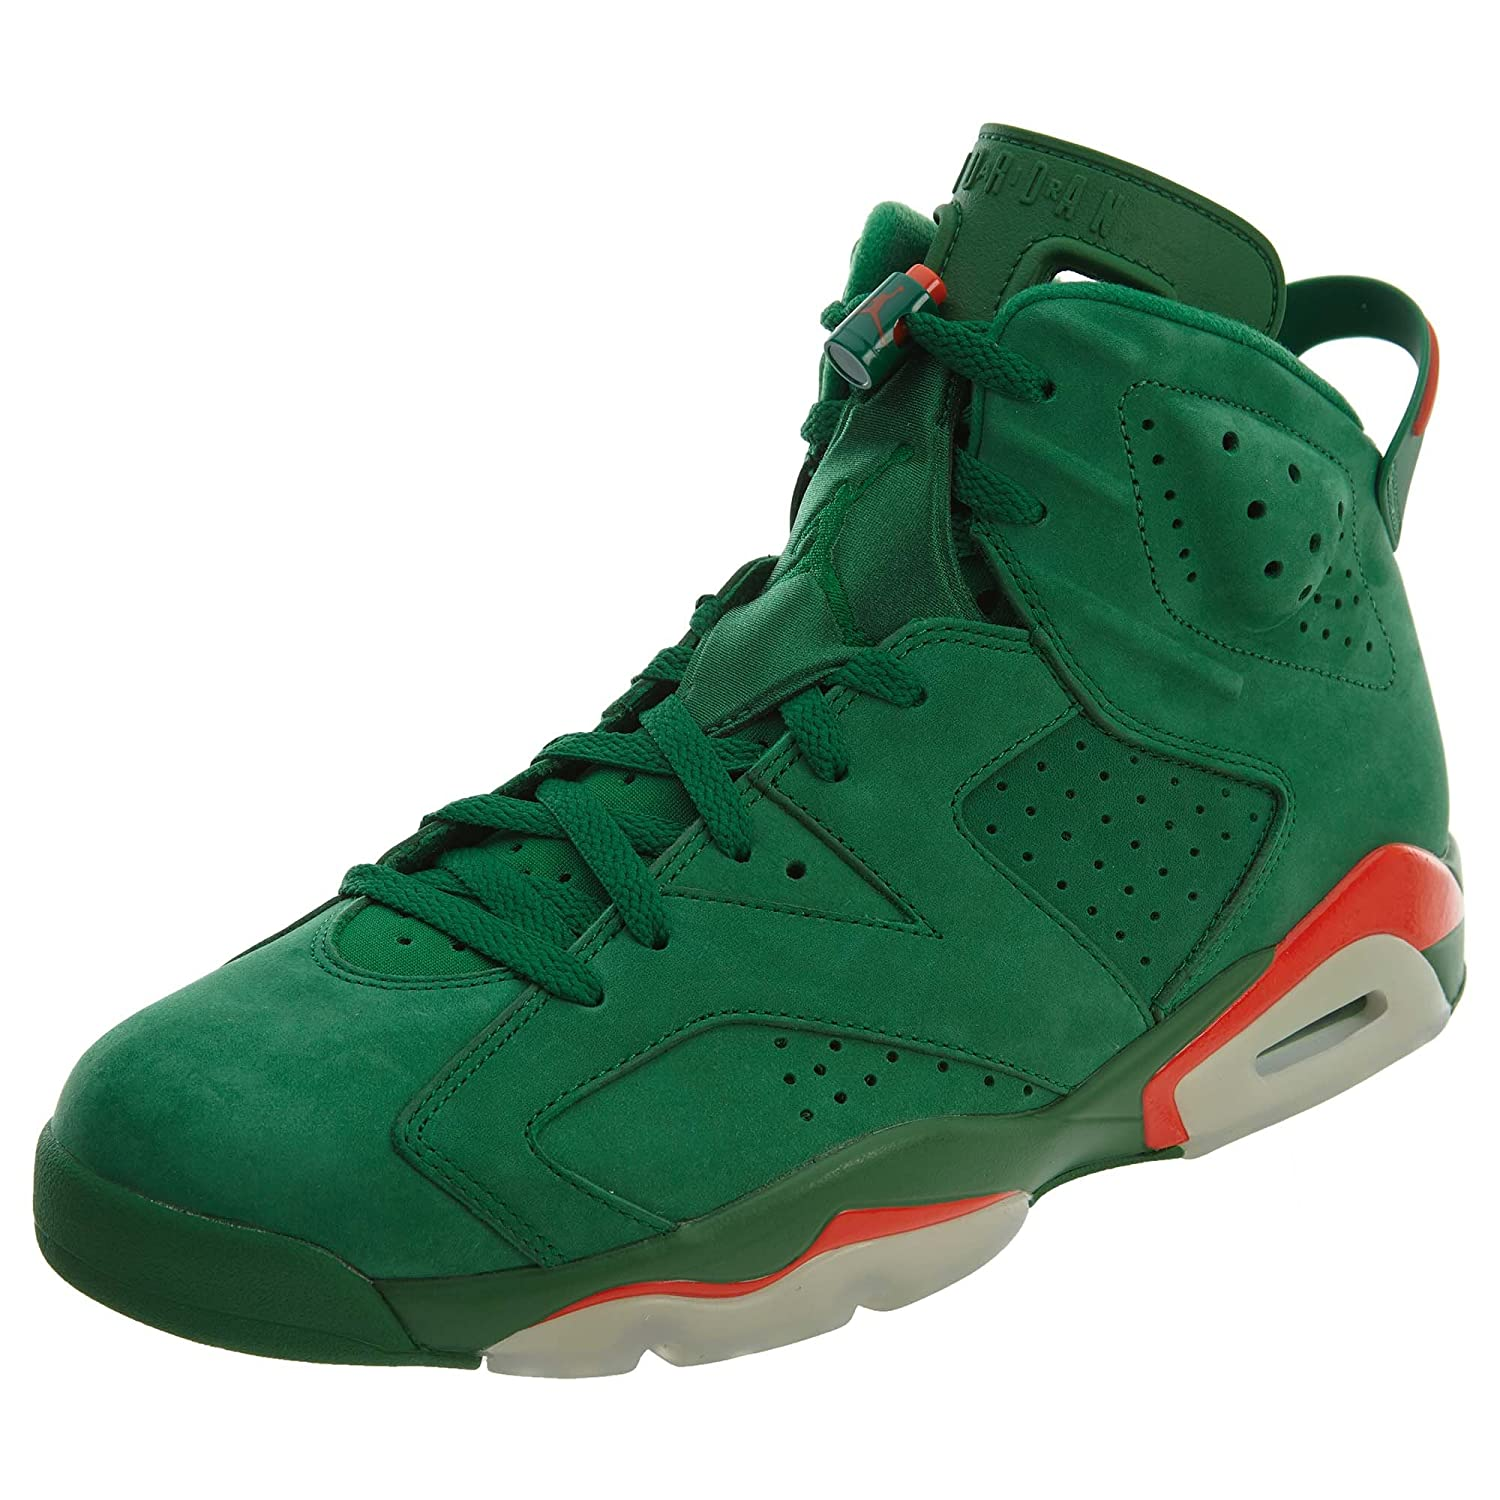 a8ea98a88bb Amazon.com | Jordan 6 Retro Nrg Gatorade Green Mens Style: AJ5986-335 Size:  8 | Fashion Sneakers